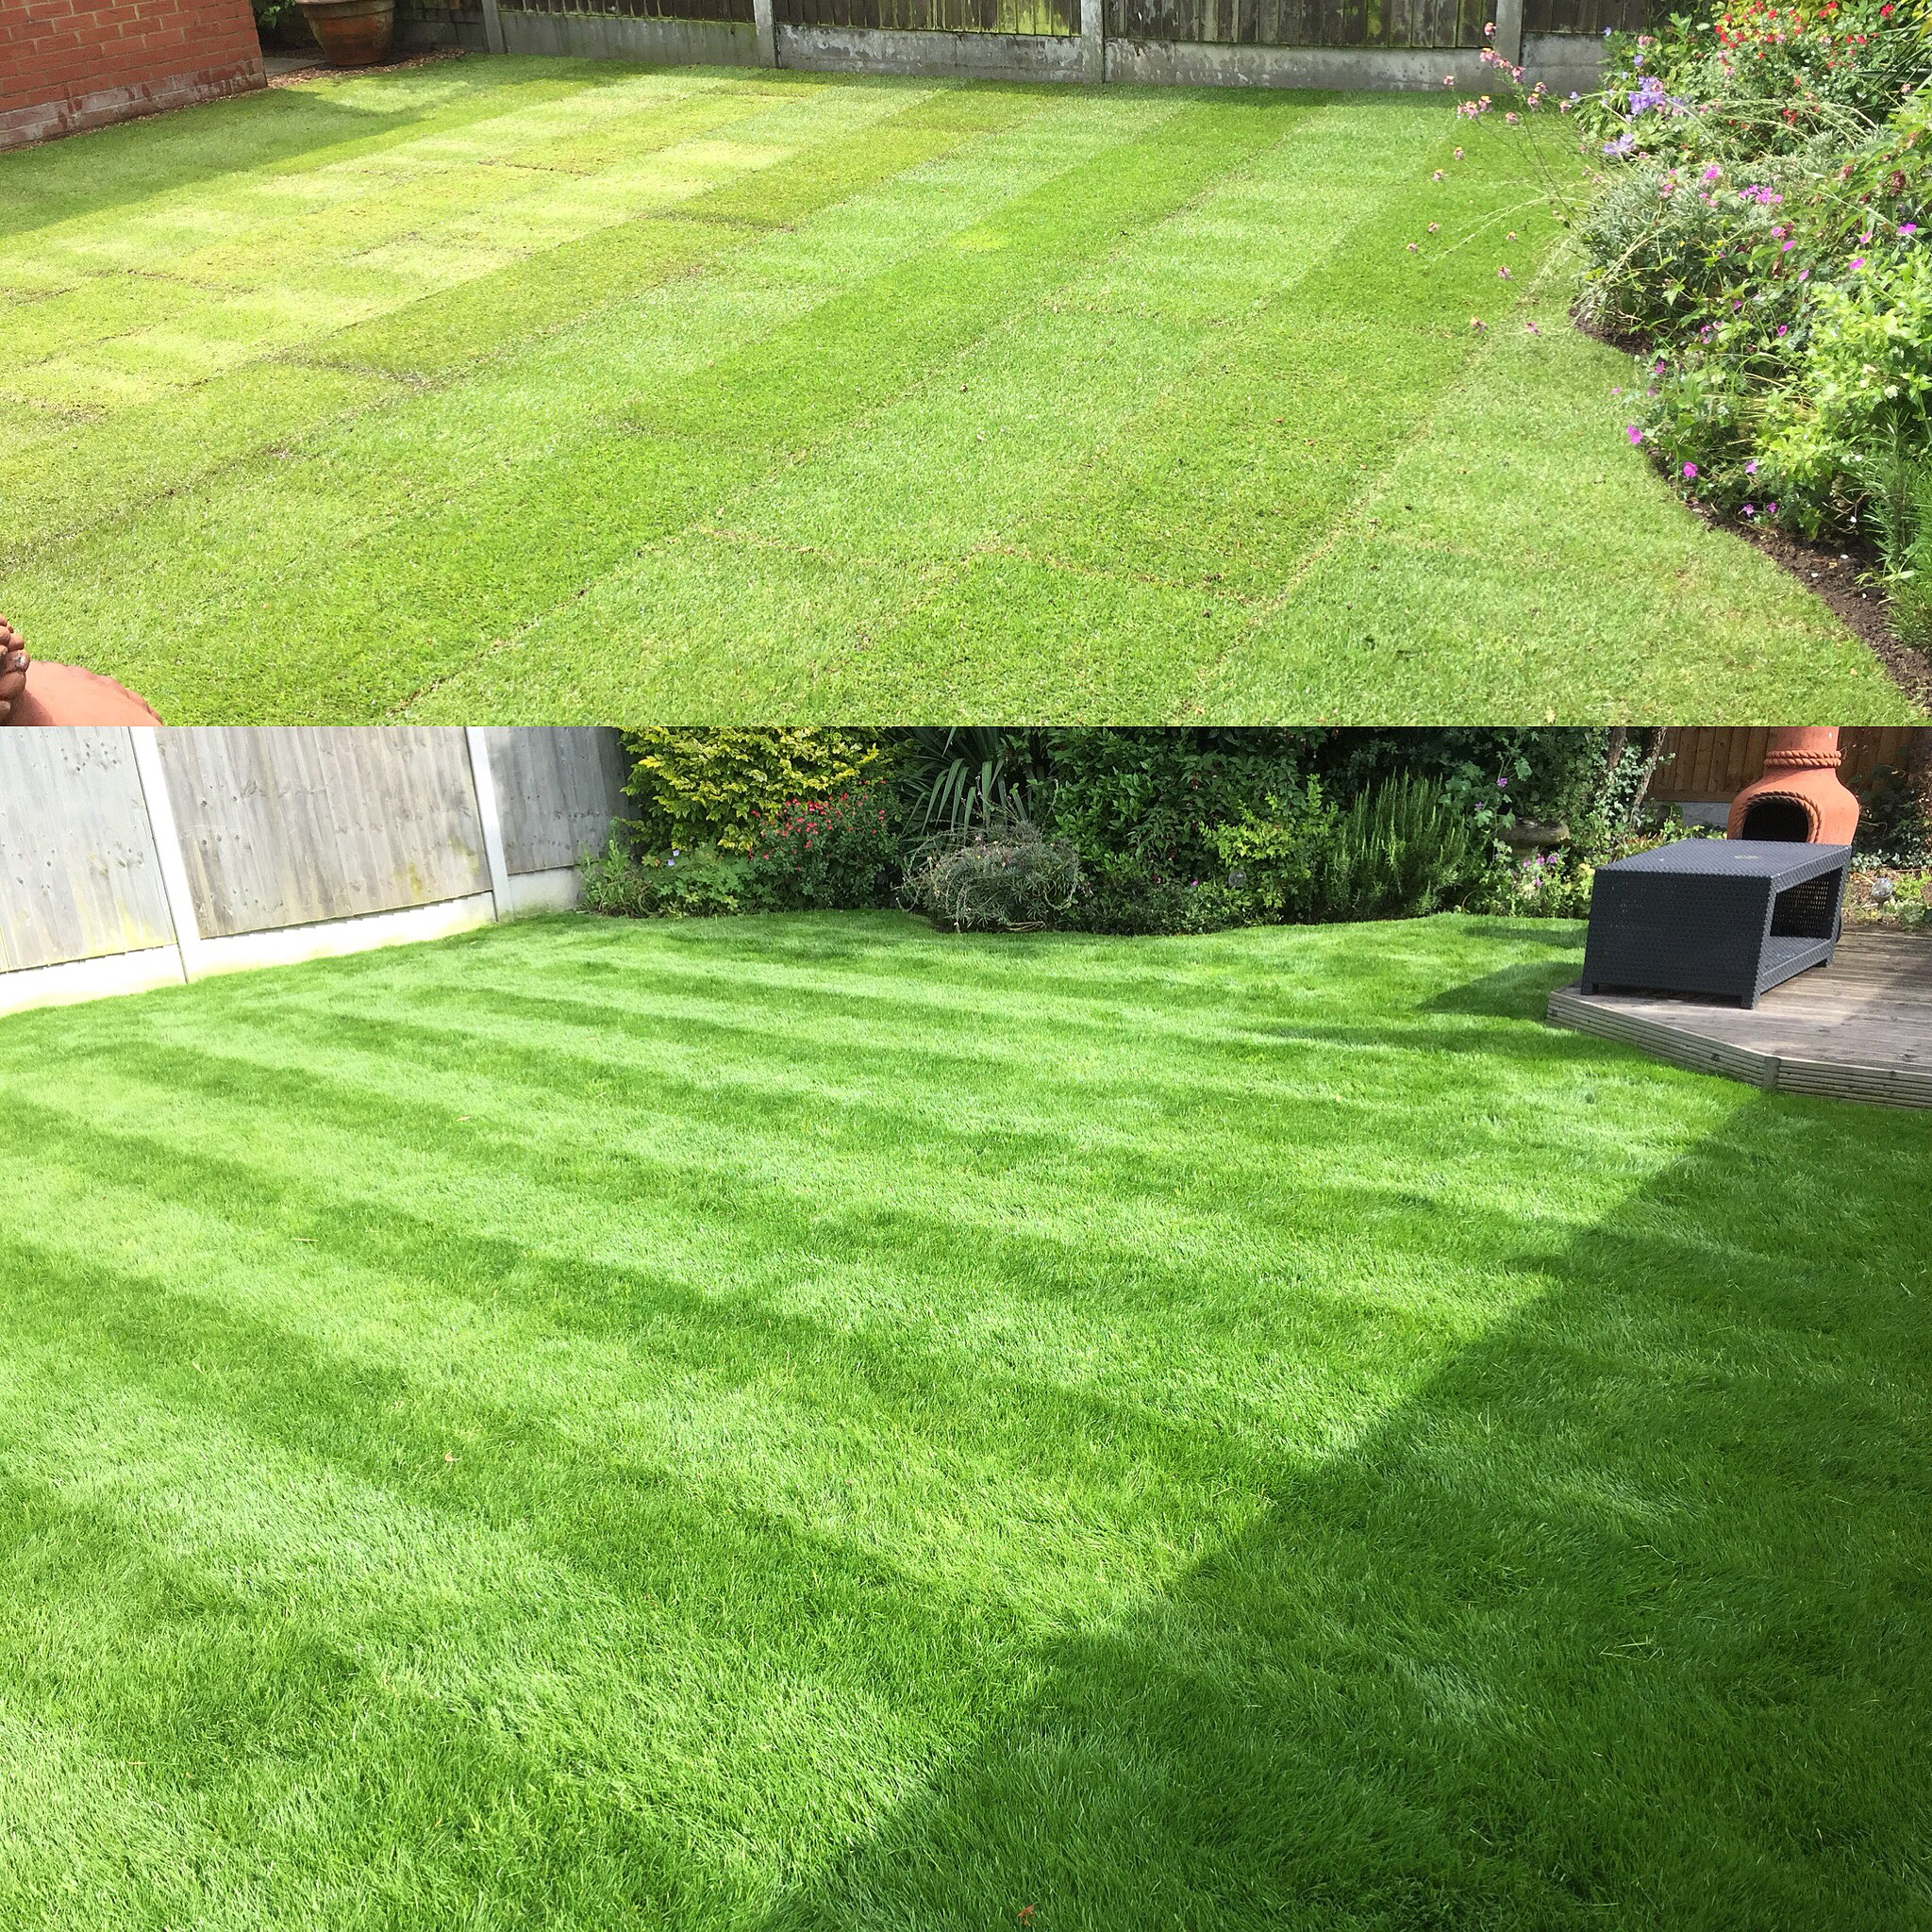 TURFING AND LAWN TREATMENT